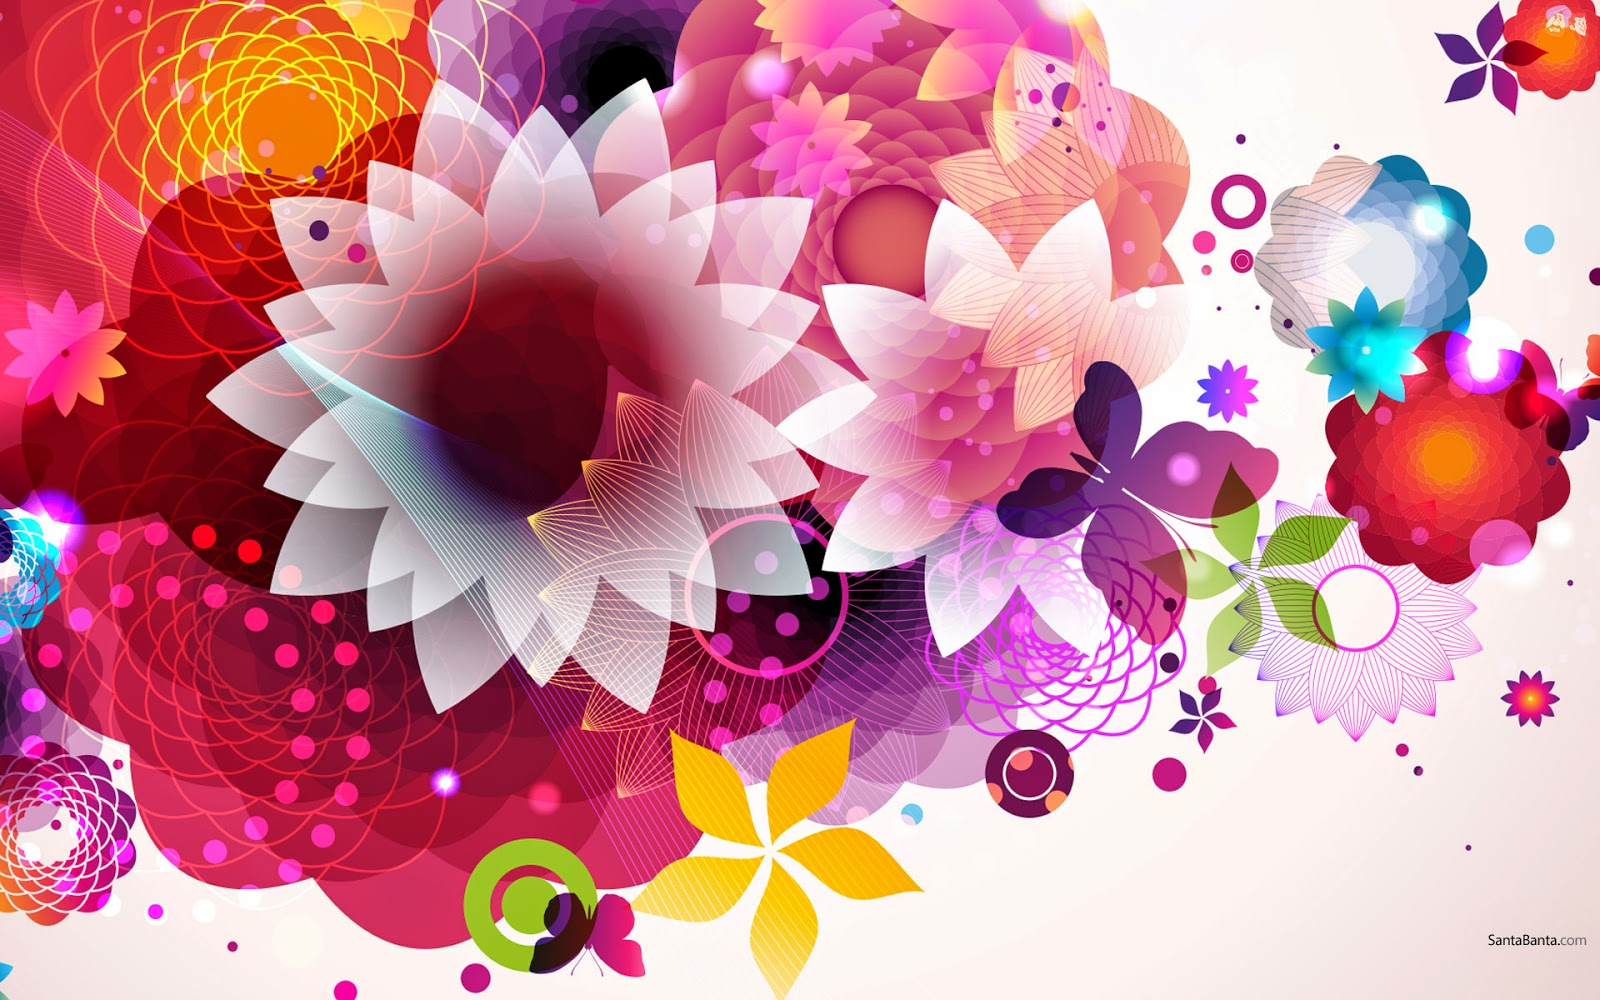 Abstract Design Flower Wallpaper: New Digital Abstract Art 2014 HD Wallpapers And Photo